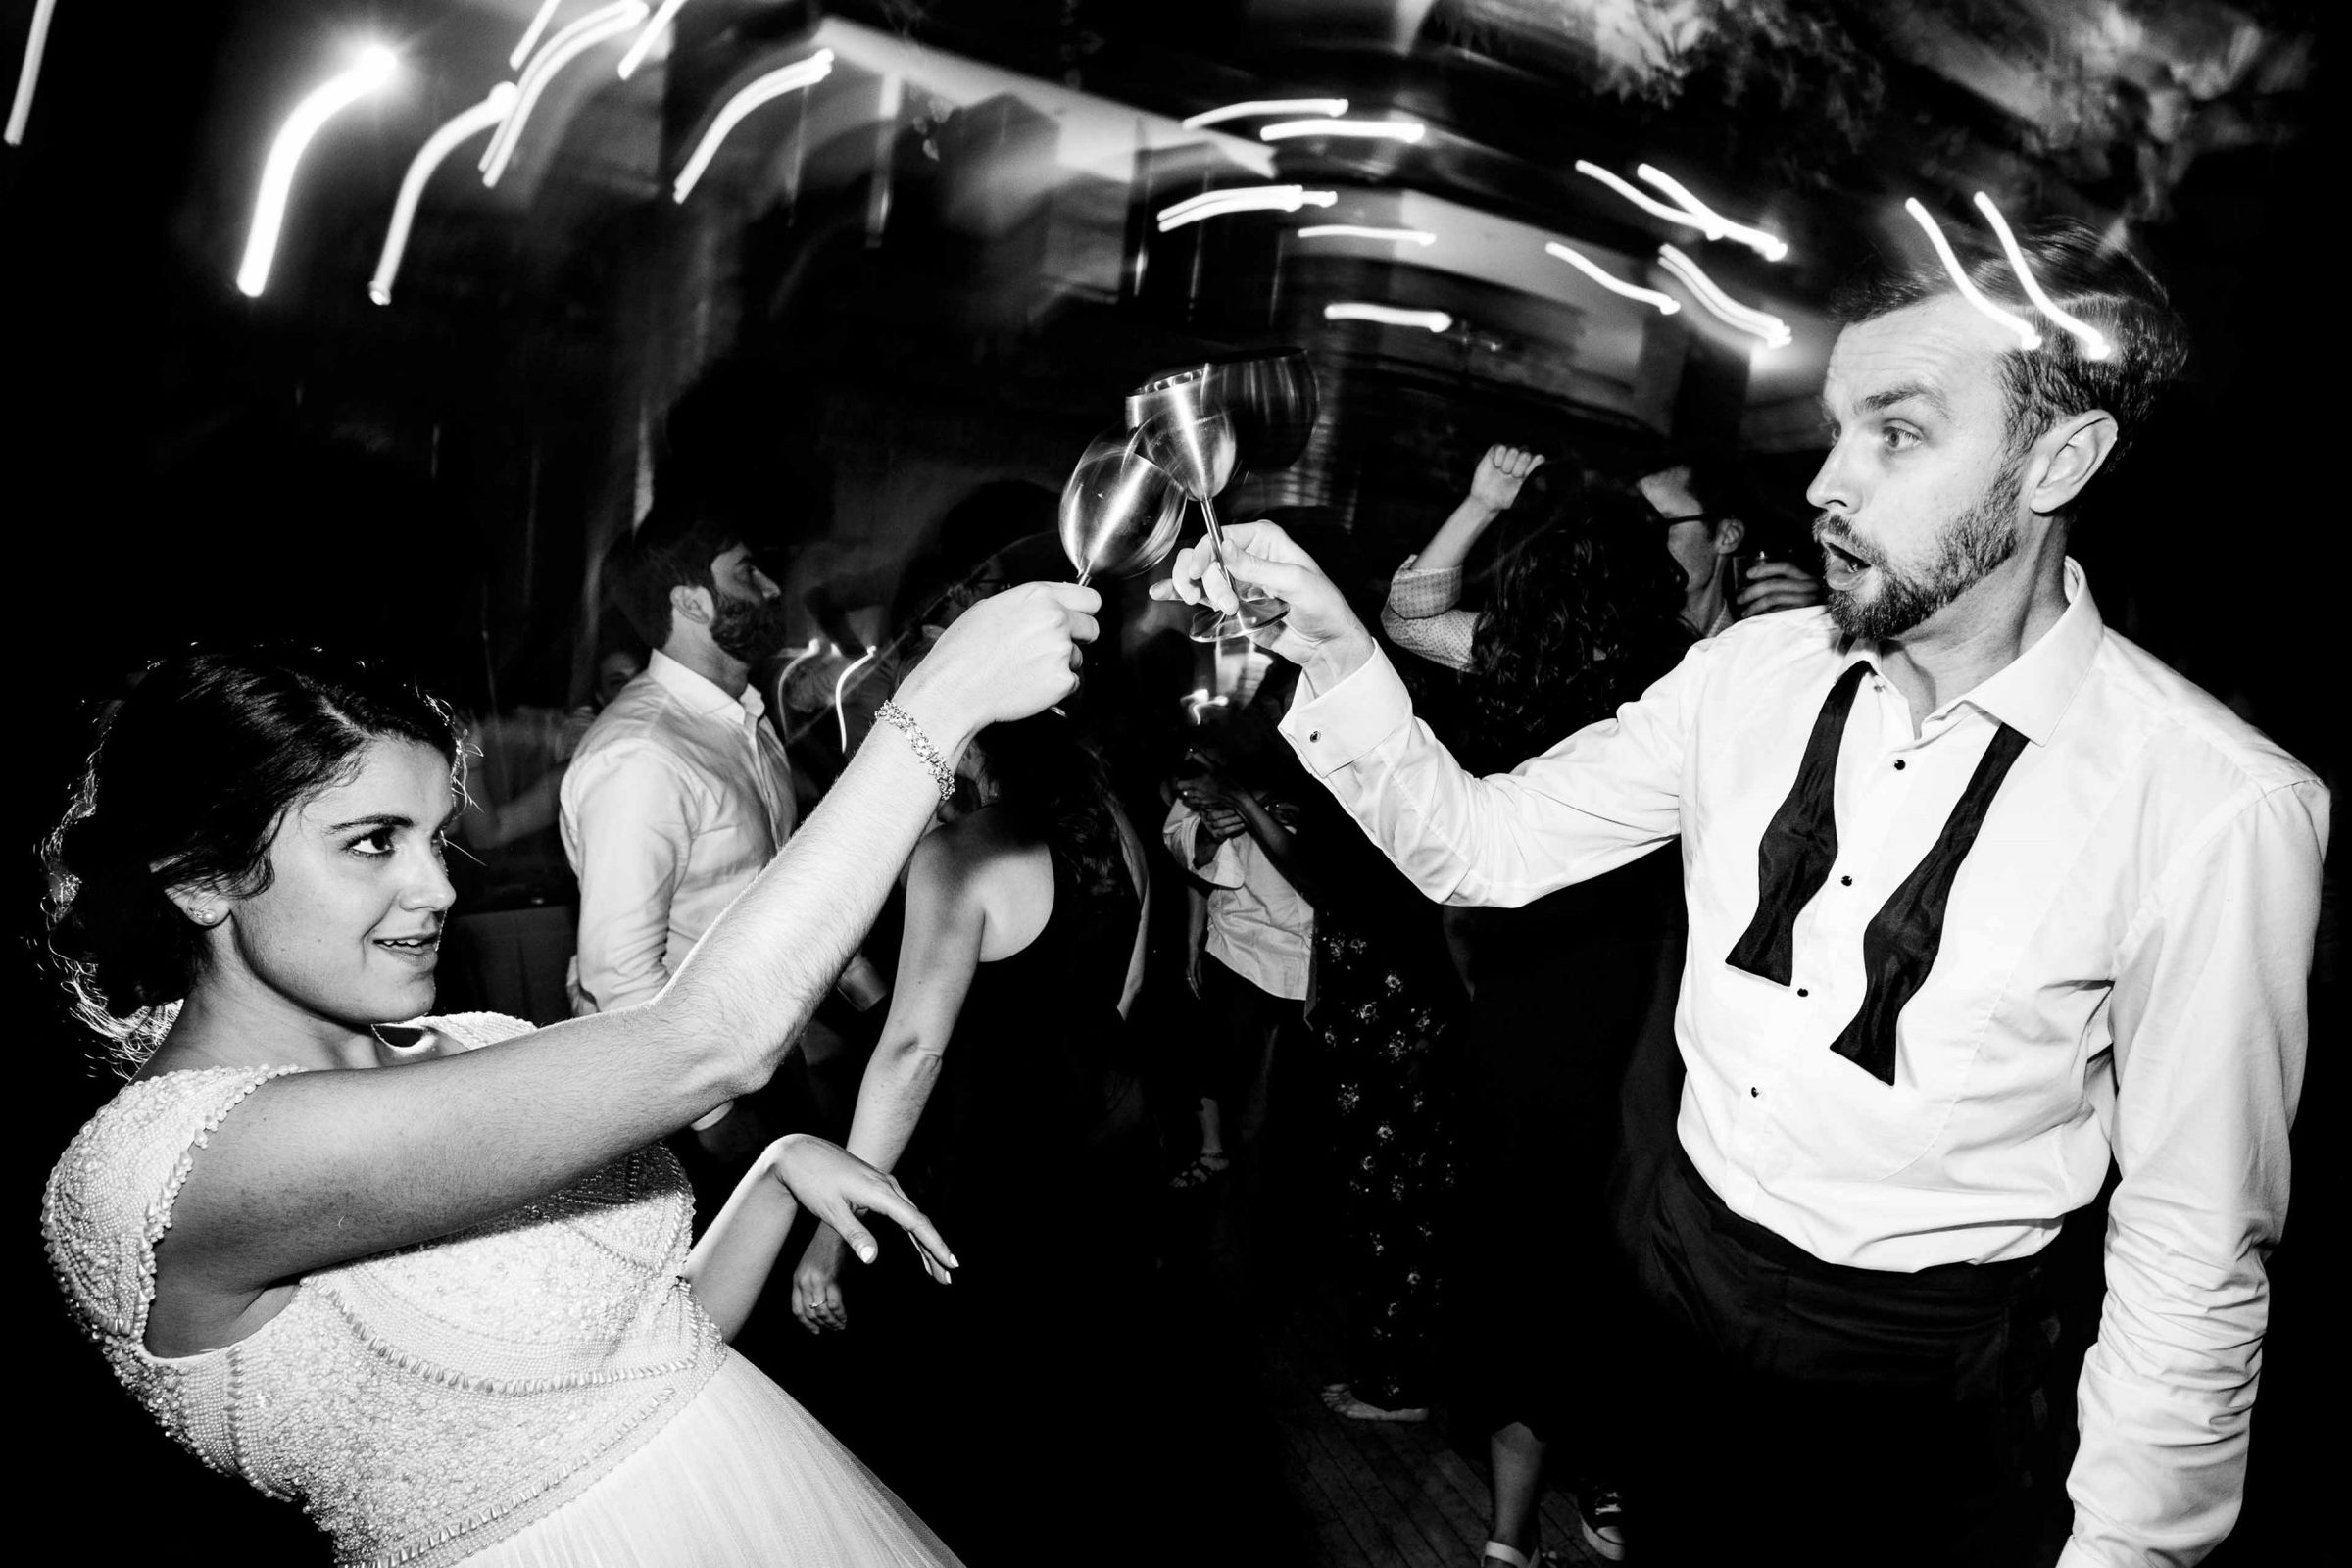 Super fun bride and groom dancing photo at a Cafe Brauer Wedding reception in Chicago, Illinois.